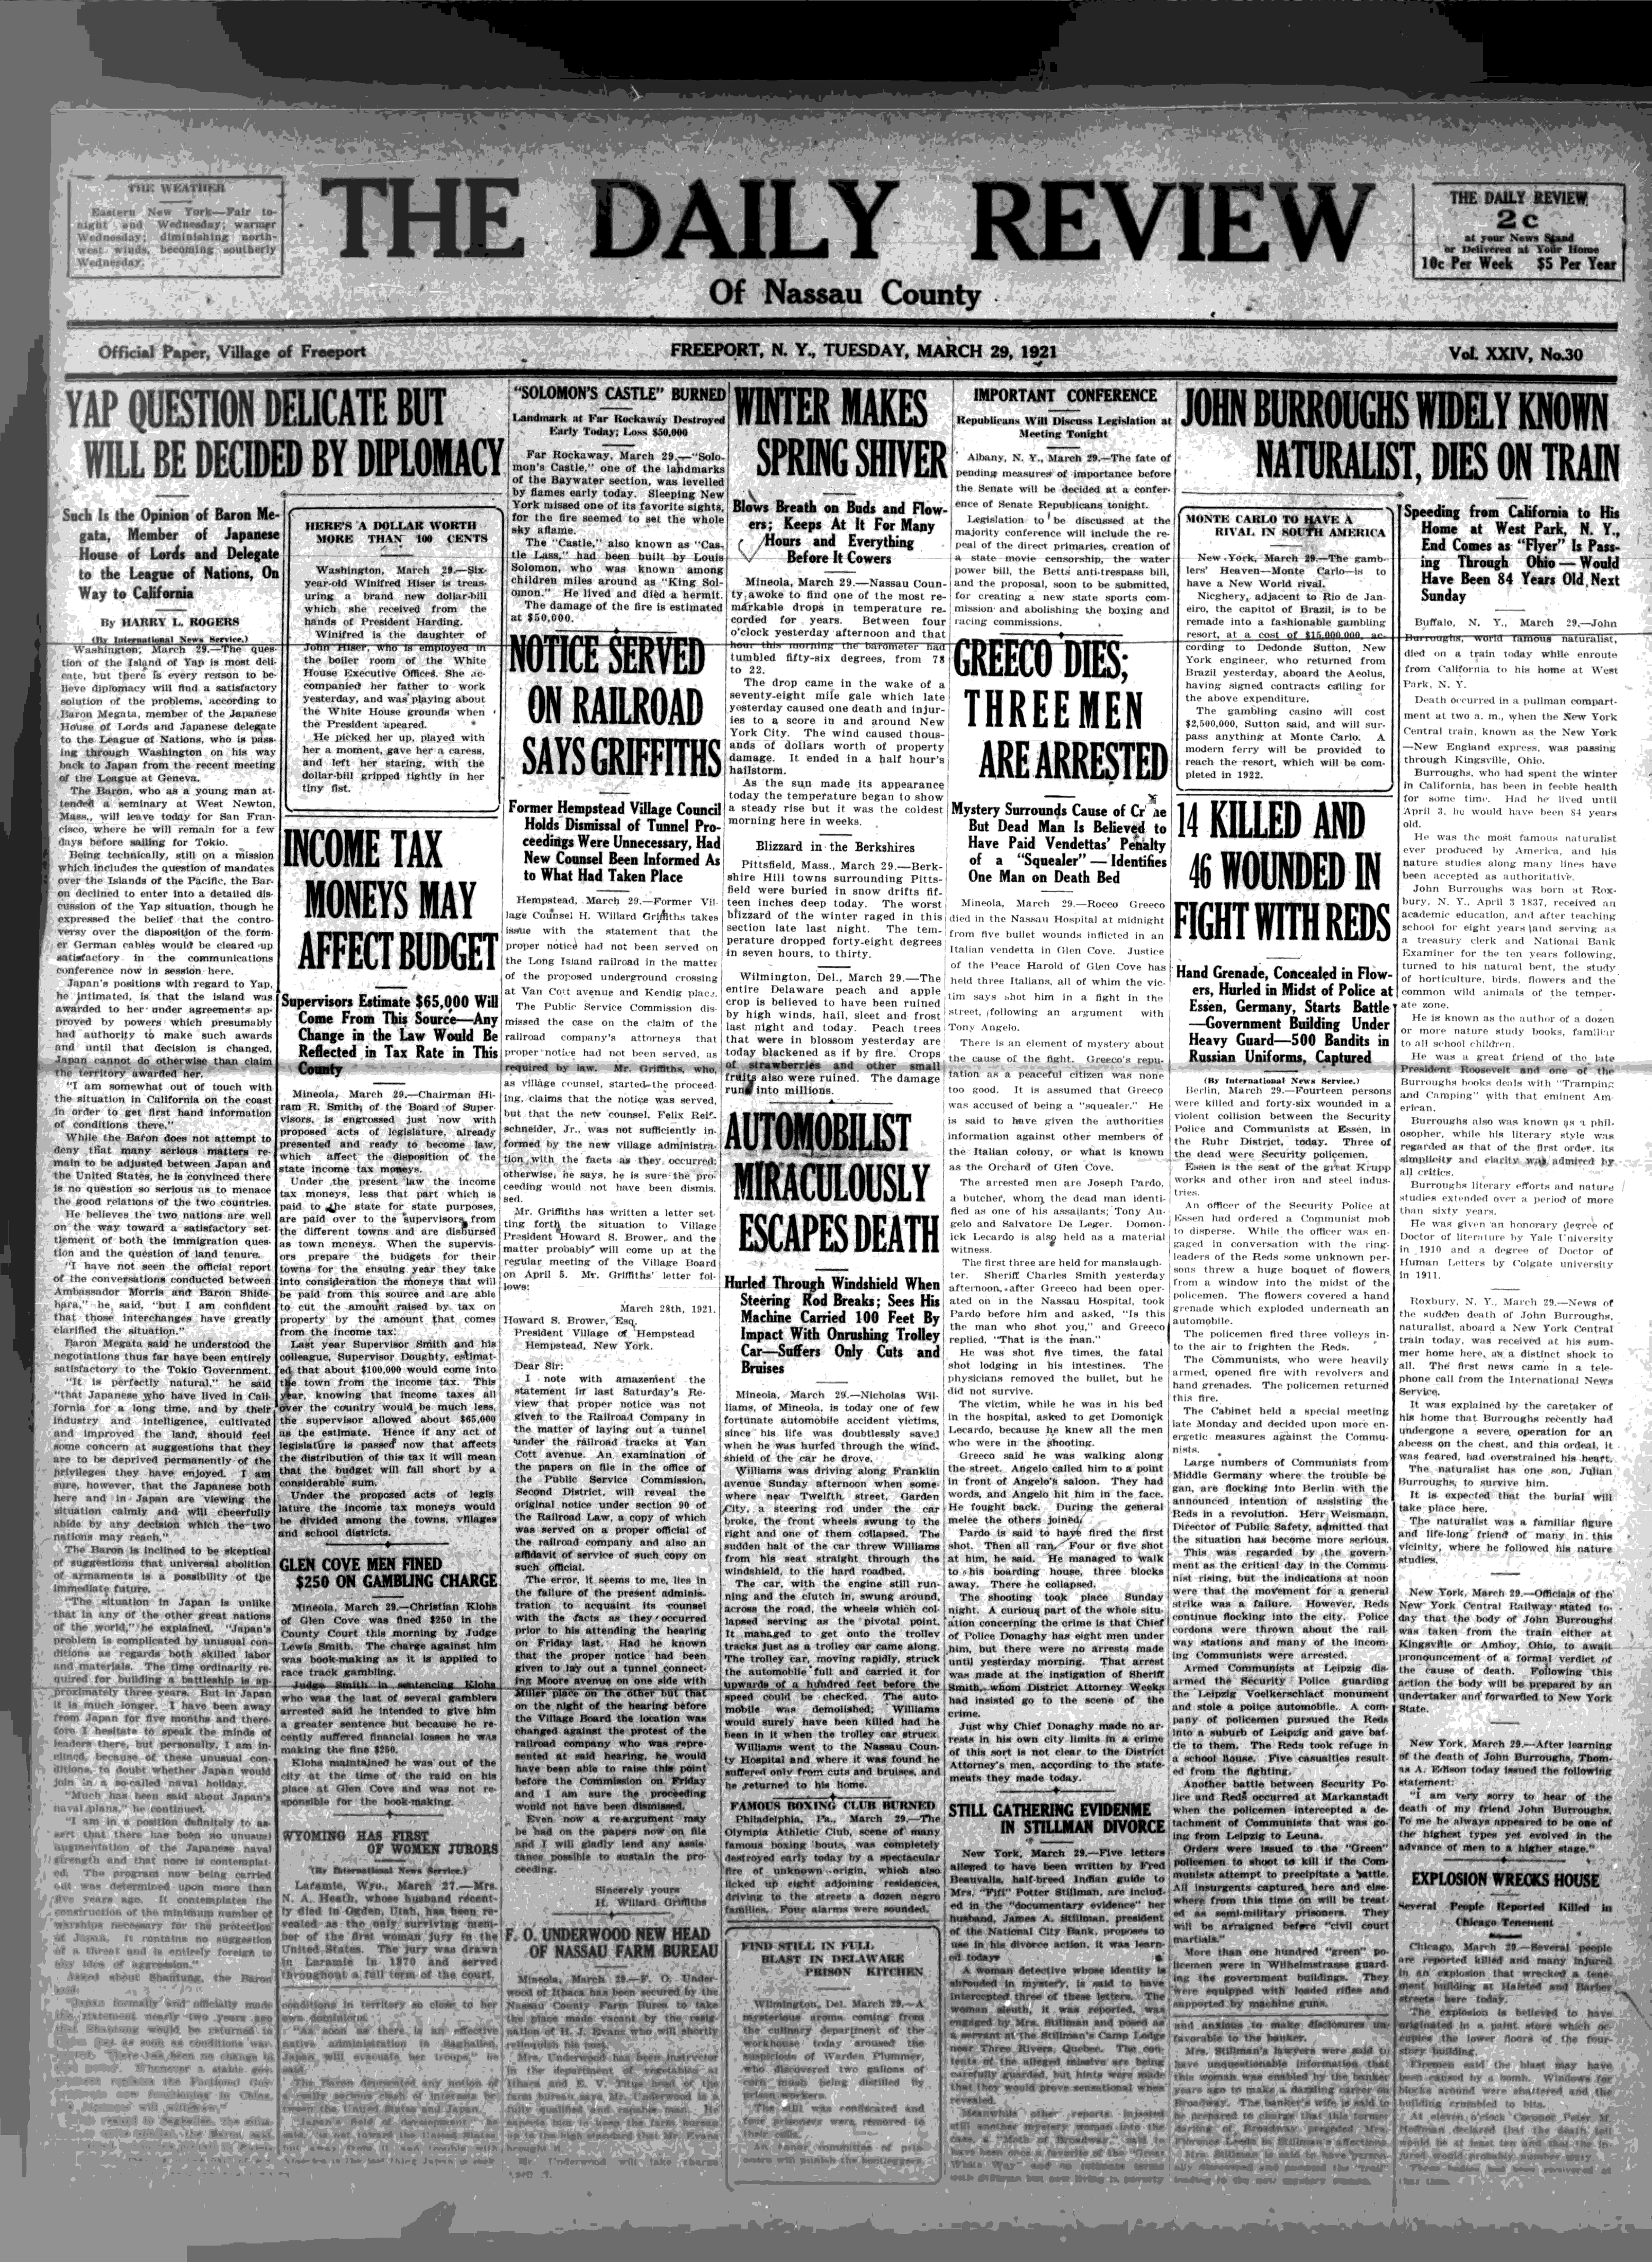 The daily review  (Freeport, N Y ) 1921-1926, March 29, 1921